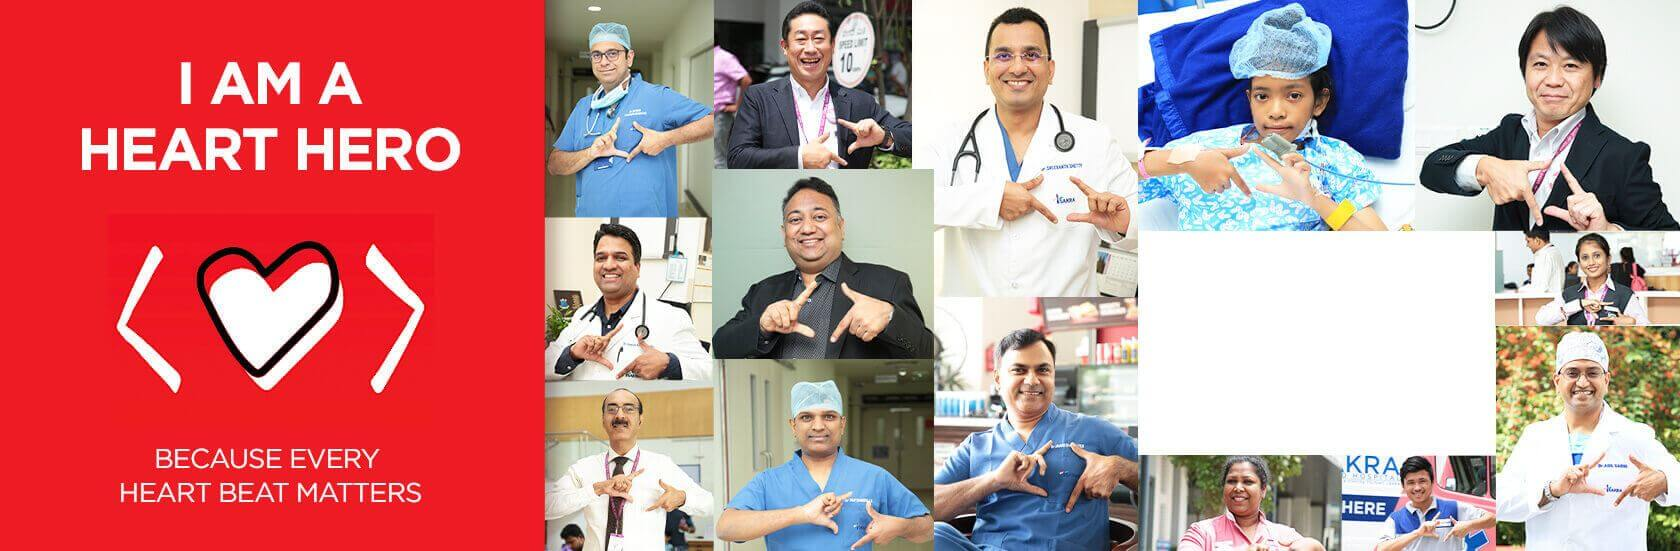 World Heart Day 2019 - Sakra Hospital